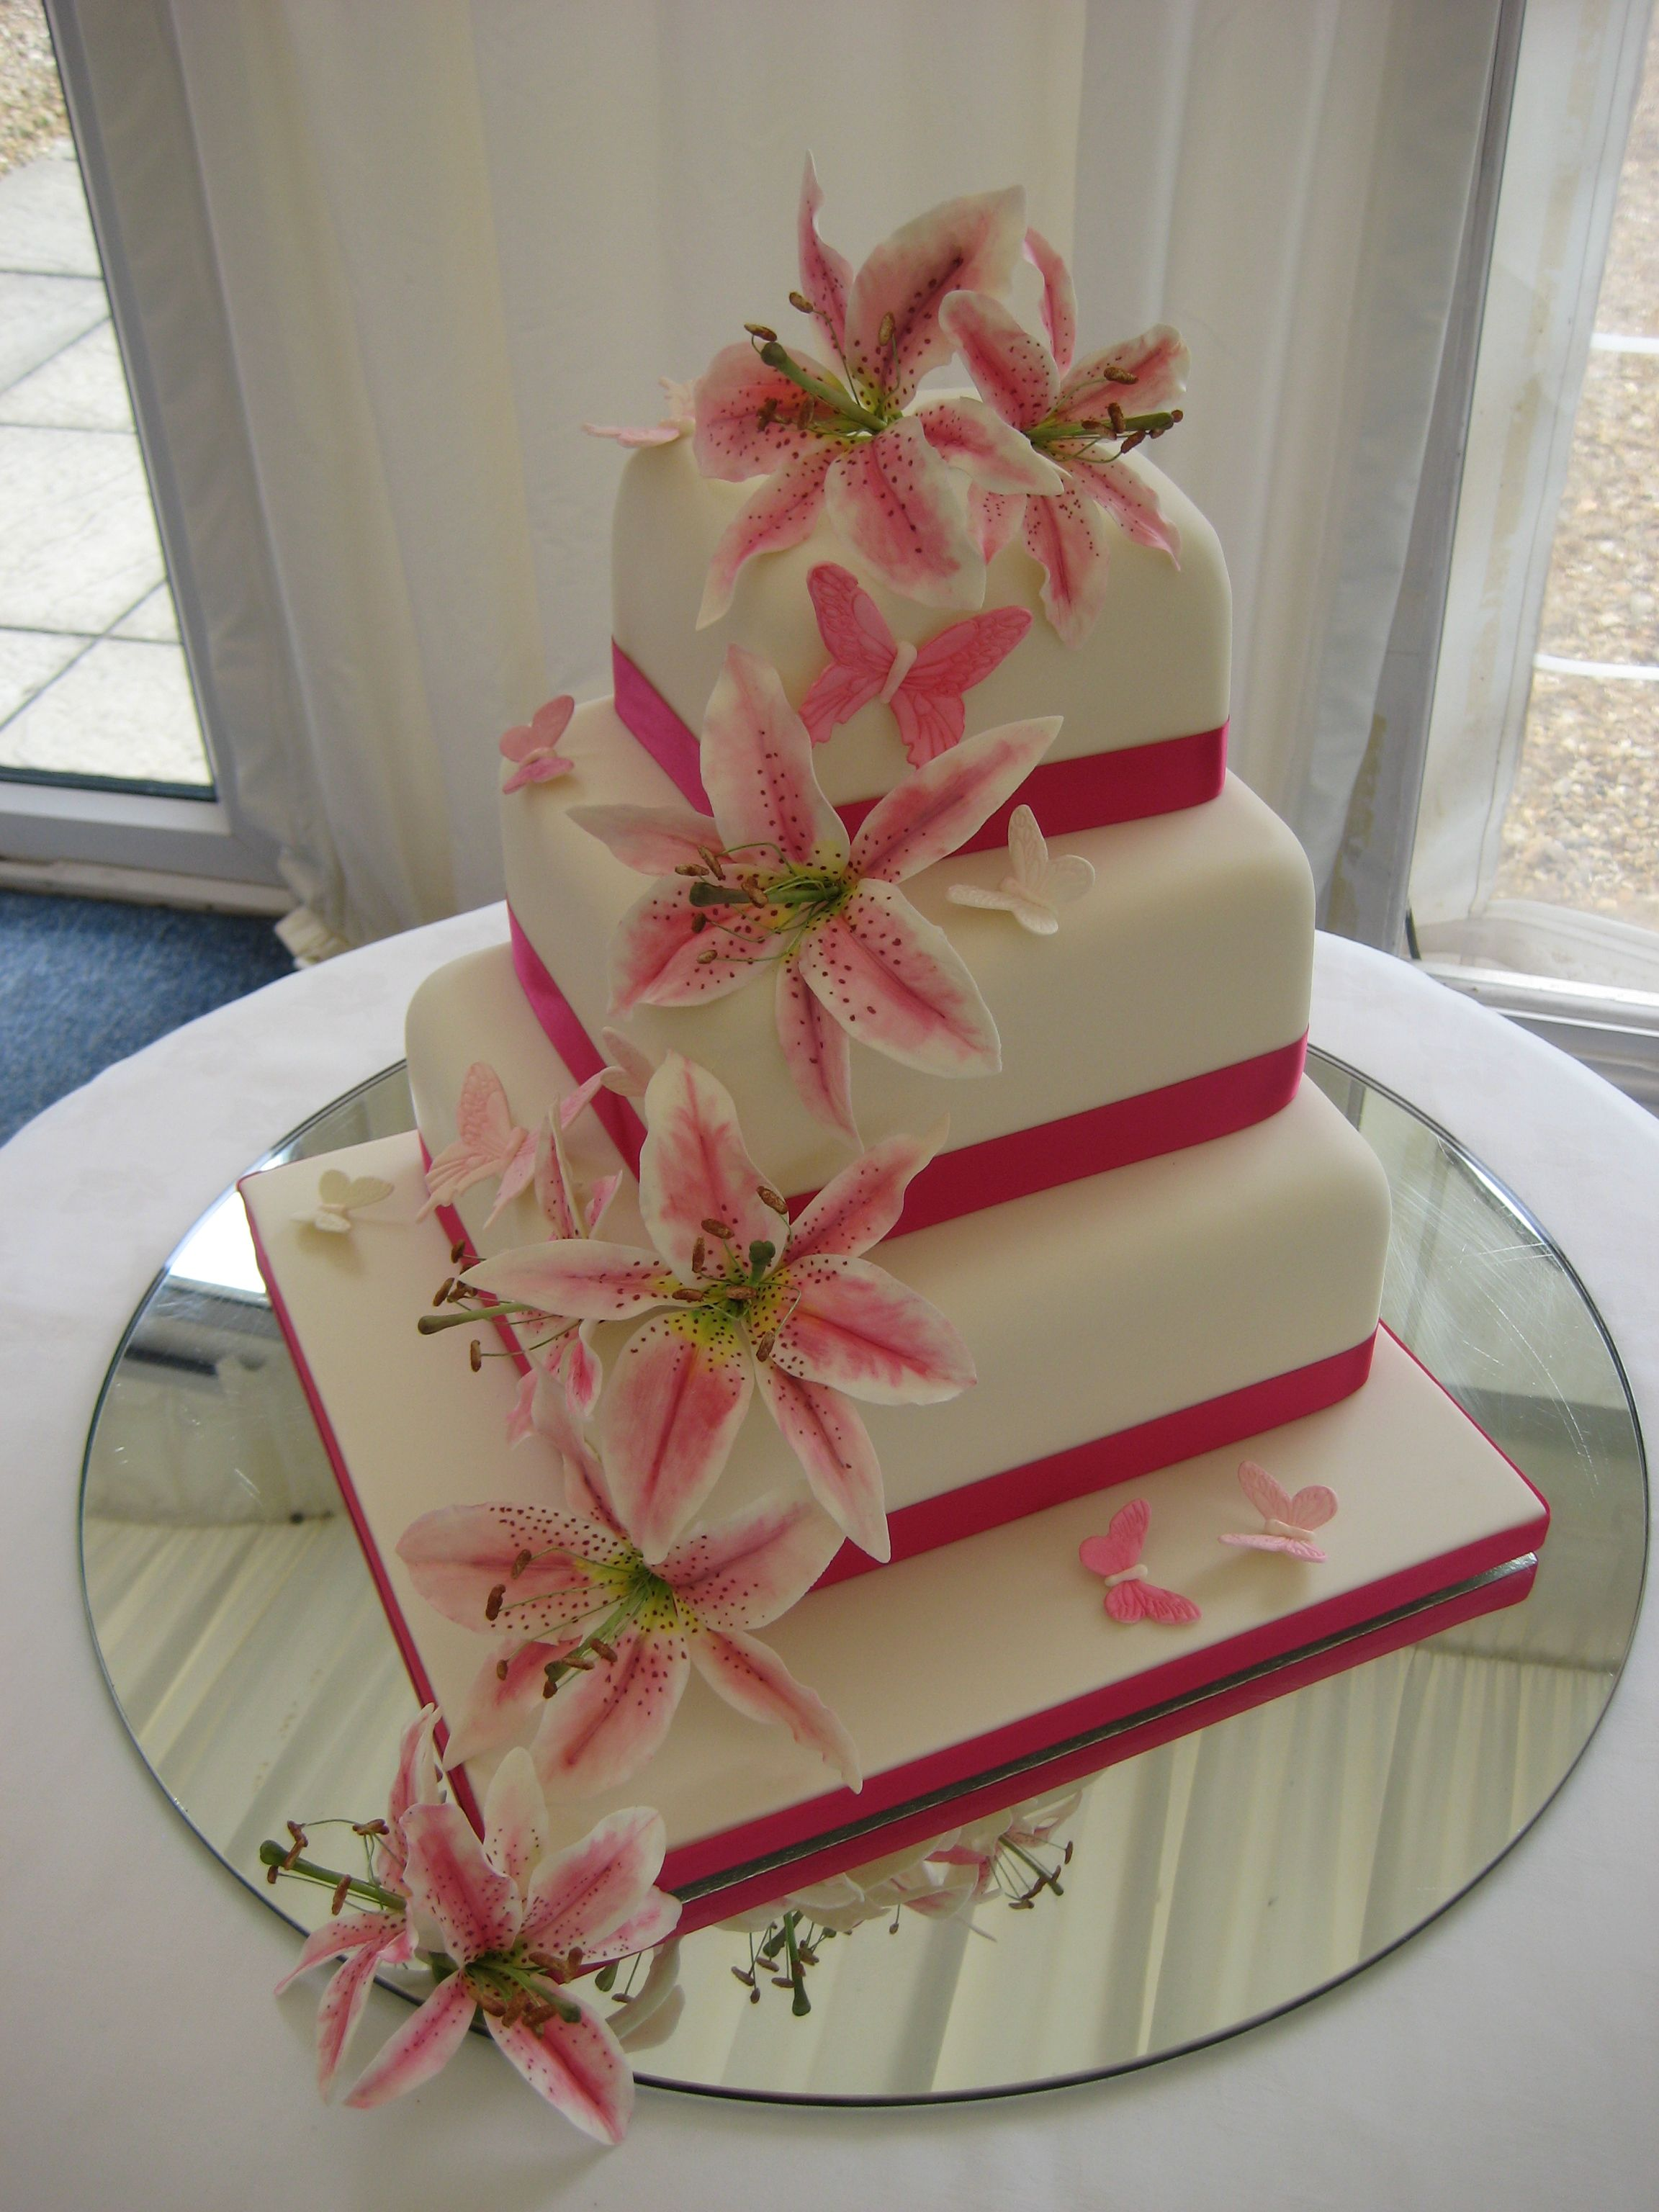 Thee tiered square wedding cake with pink sugar star gazer